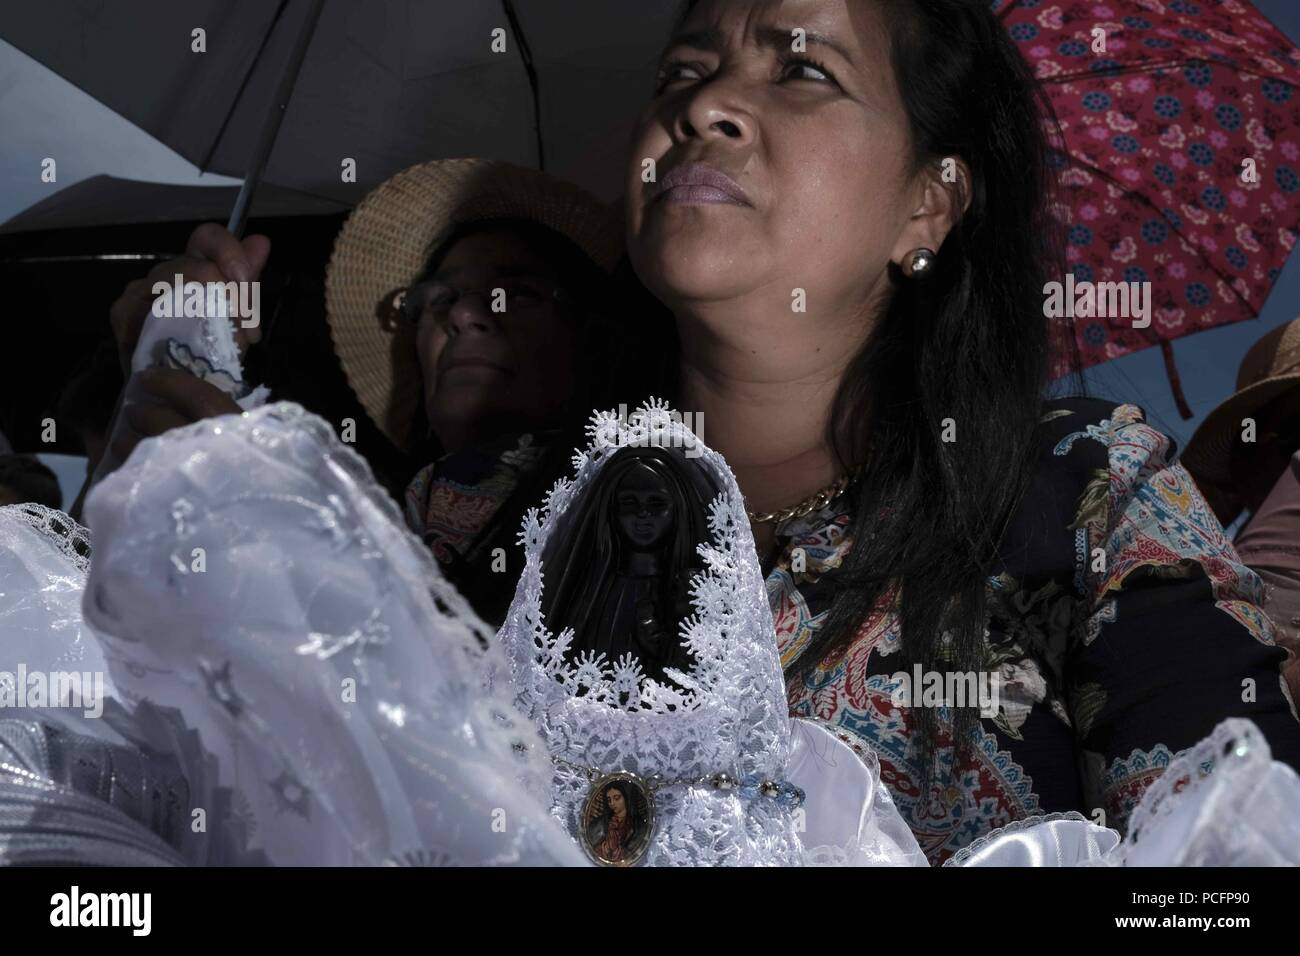 Cartago, Costa Rica. 02nd Aug, 2018. Several women hold figures of the 'Bold' as they call the Virgin of the Angels during the traditional pilgrimage towards the Basilica de los Angeles, in Cartago, Costa Rica, 1 August 2018. Thousands of Costa Ricans perform today the traditional pilgrimage to thank favors or ask for miracles to the Virgin of the Angels, patron of Costa Rica, in the largest show of Catholic faith in this Central American country. Credit: Jeffrey Arguedas/EFE/Alamy Live News - Stock Image